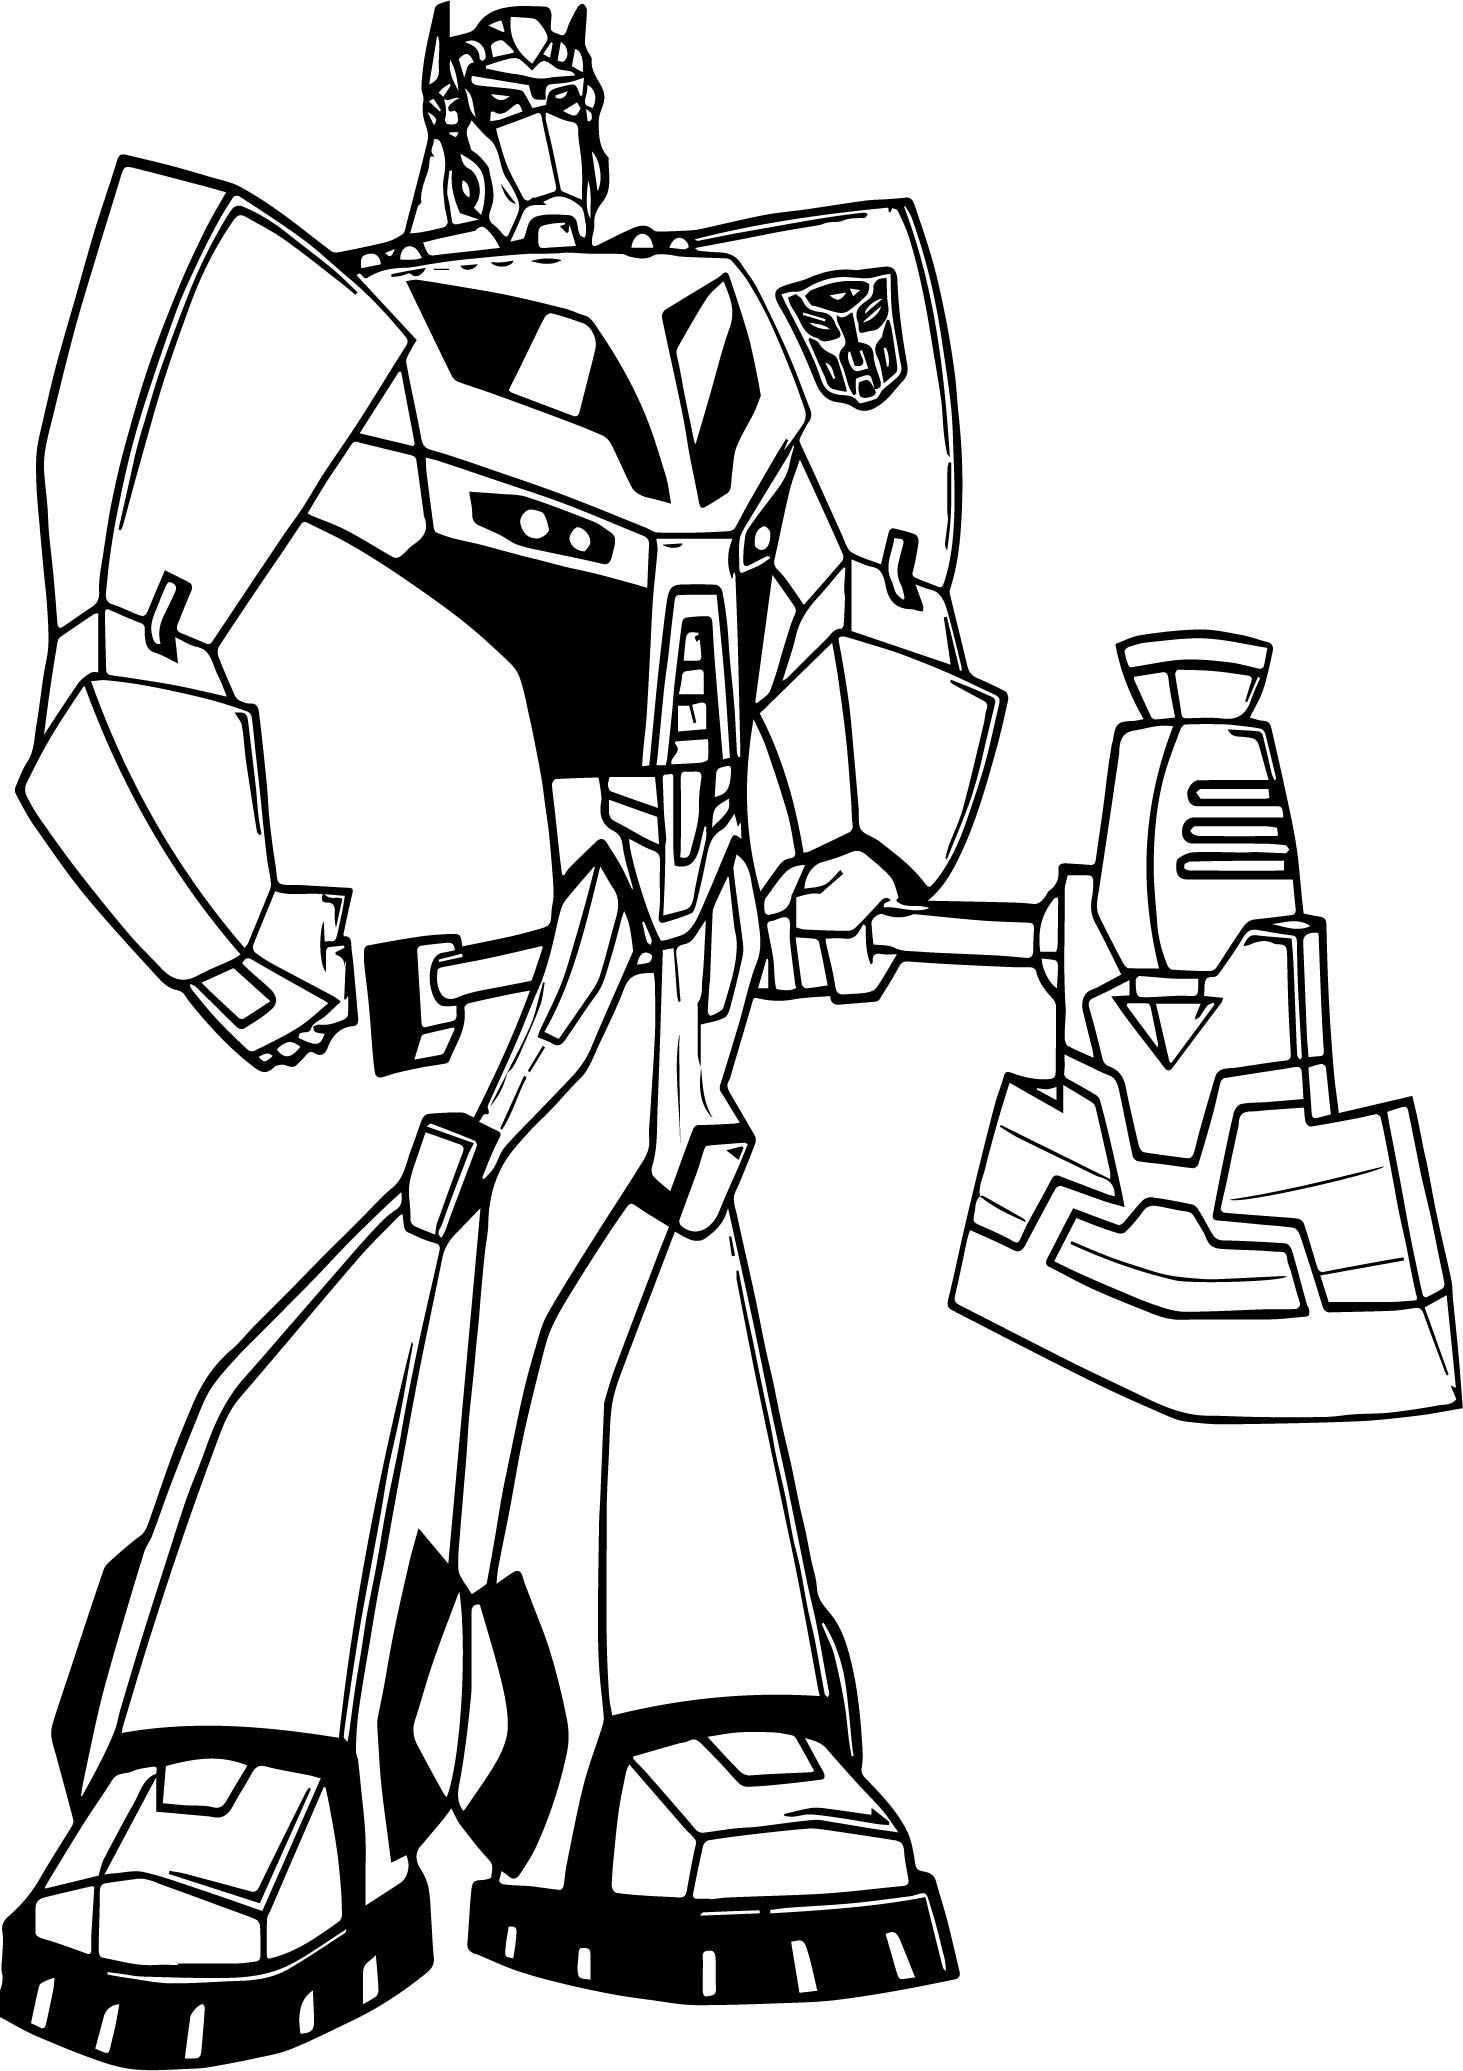 Awesome Transformers Blade Coloring Page Transformers Coloring Pages Nemo Coloring Pages Paw Patrol Coloring